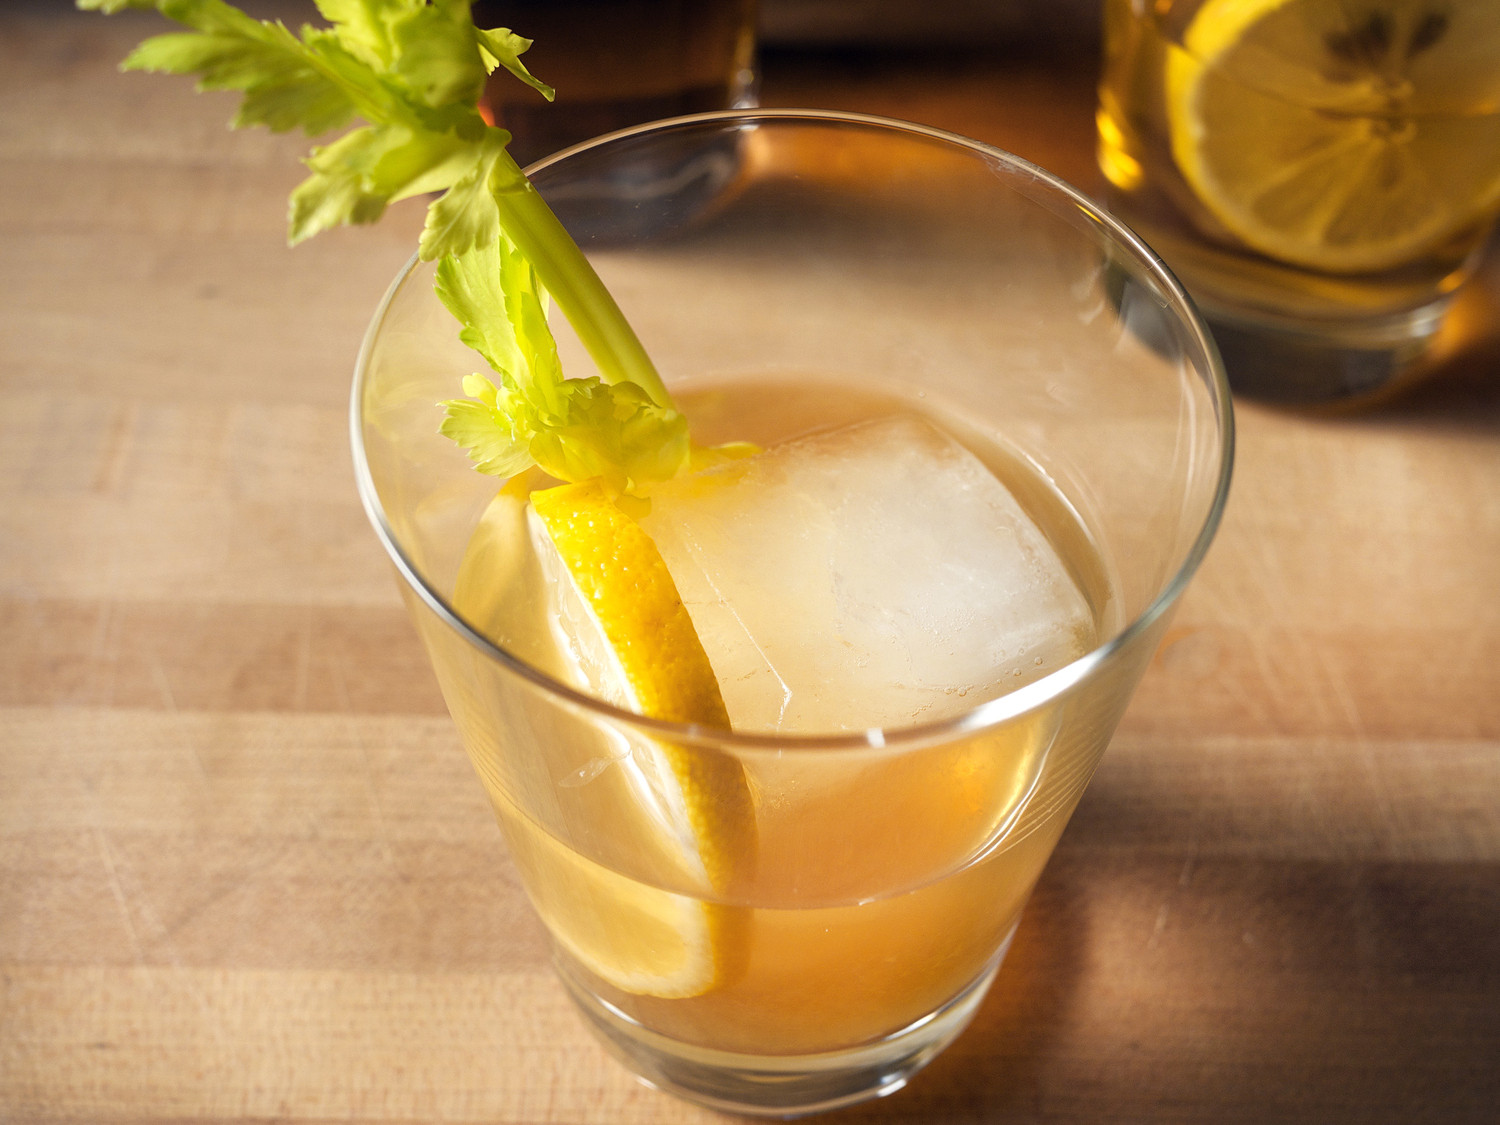 Good Gin Drinks  What to Make With Gin 45 Great Cocktails